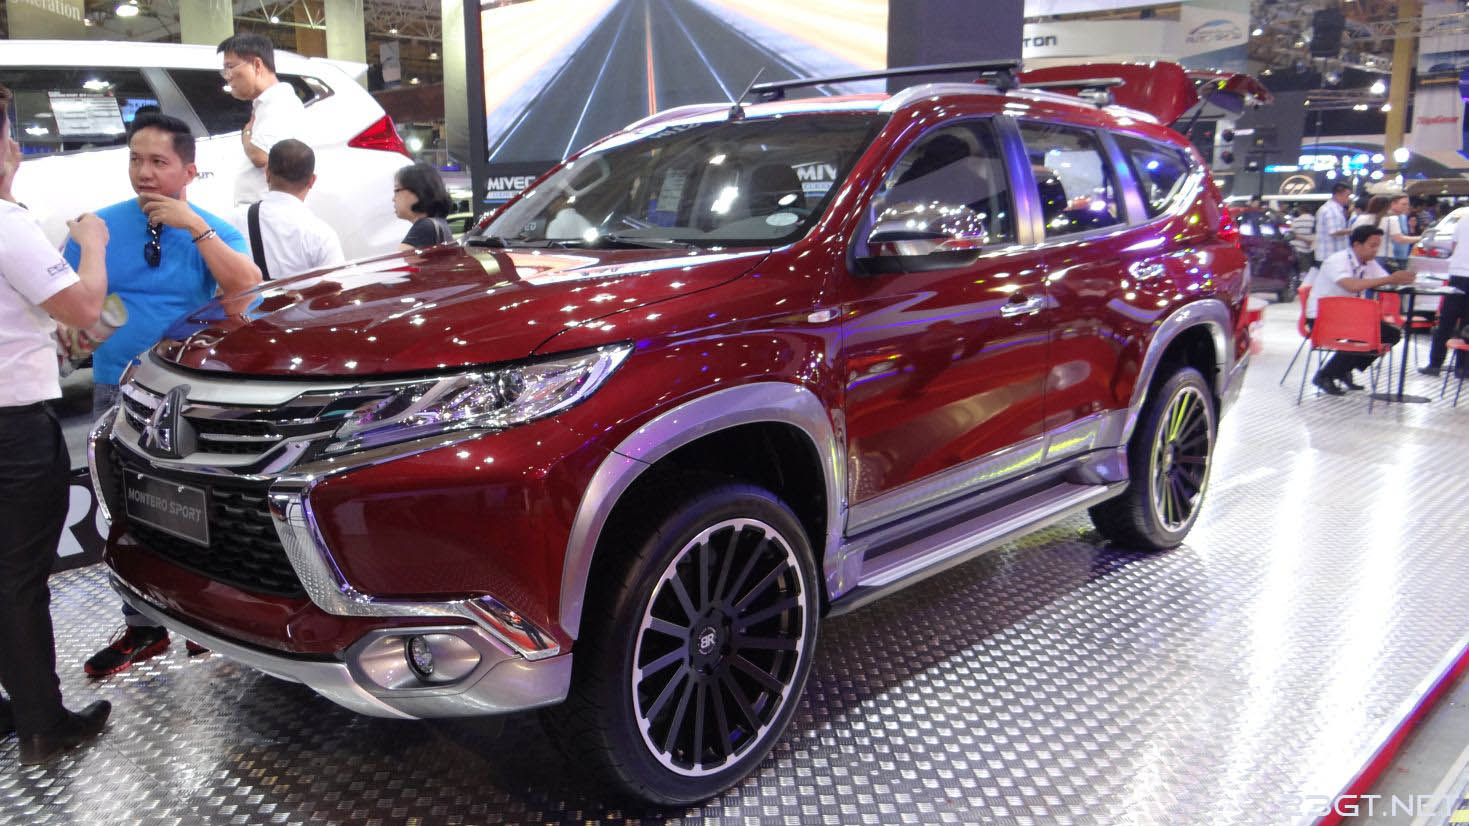 The montero sport is the hottest seller for mitsubishi in the philippines and just had a totally new version go on sale